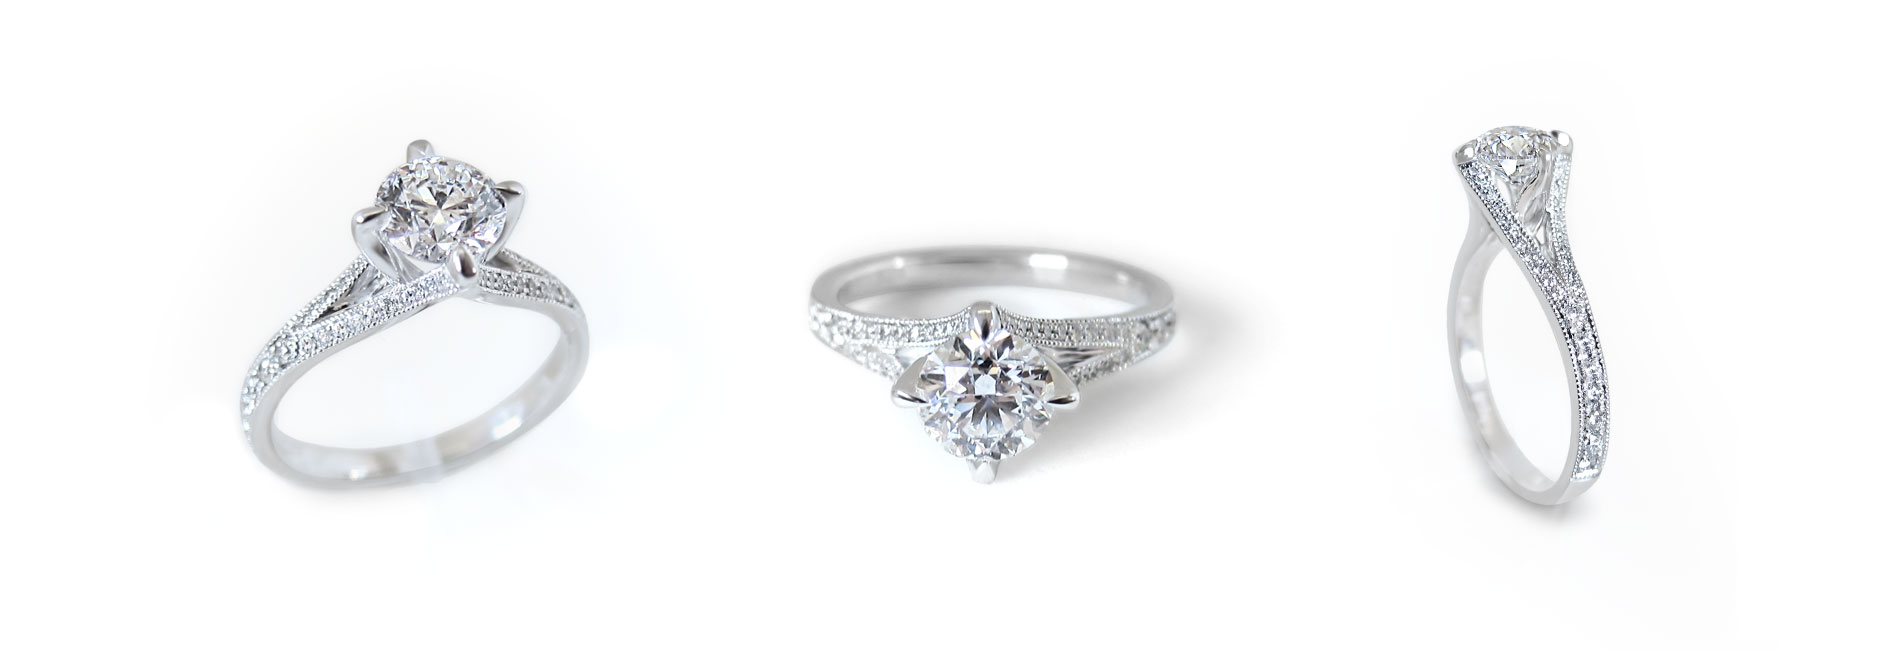 Unique white gold and solitaire diamond engagement ring custom made with a split ring band